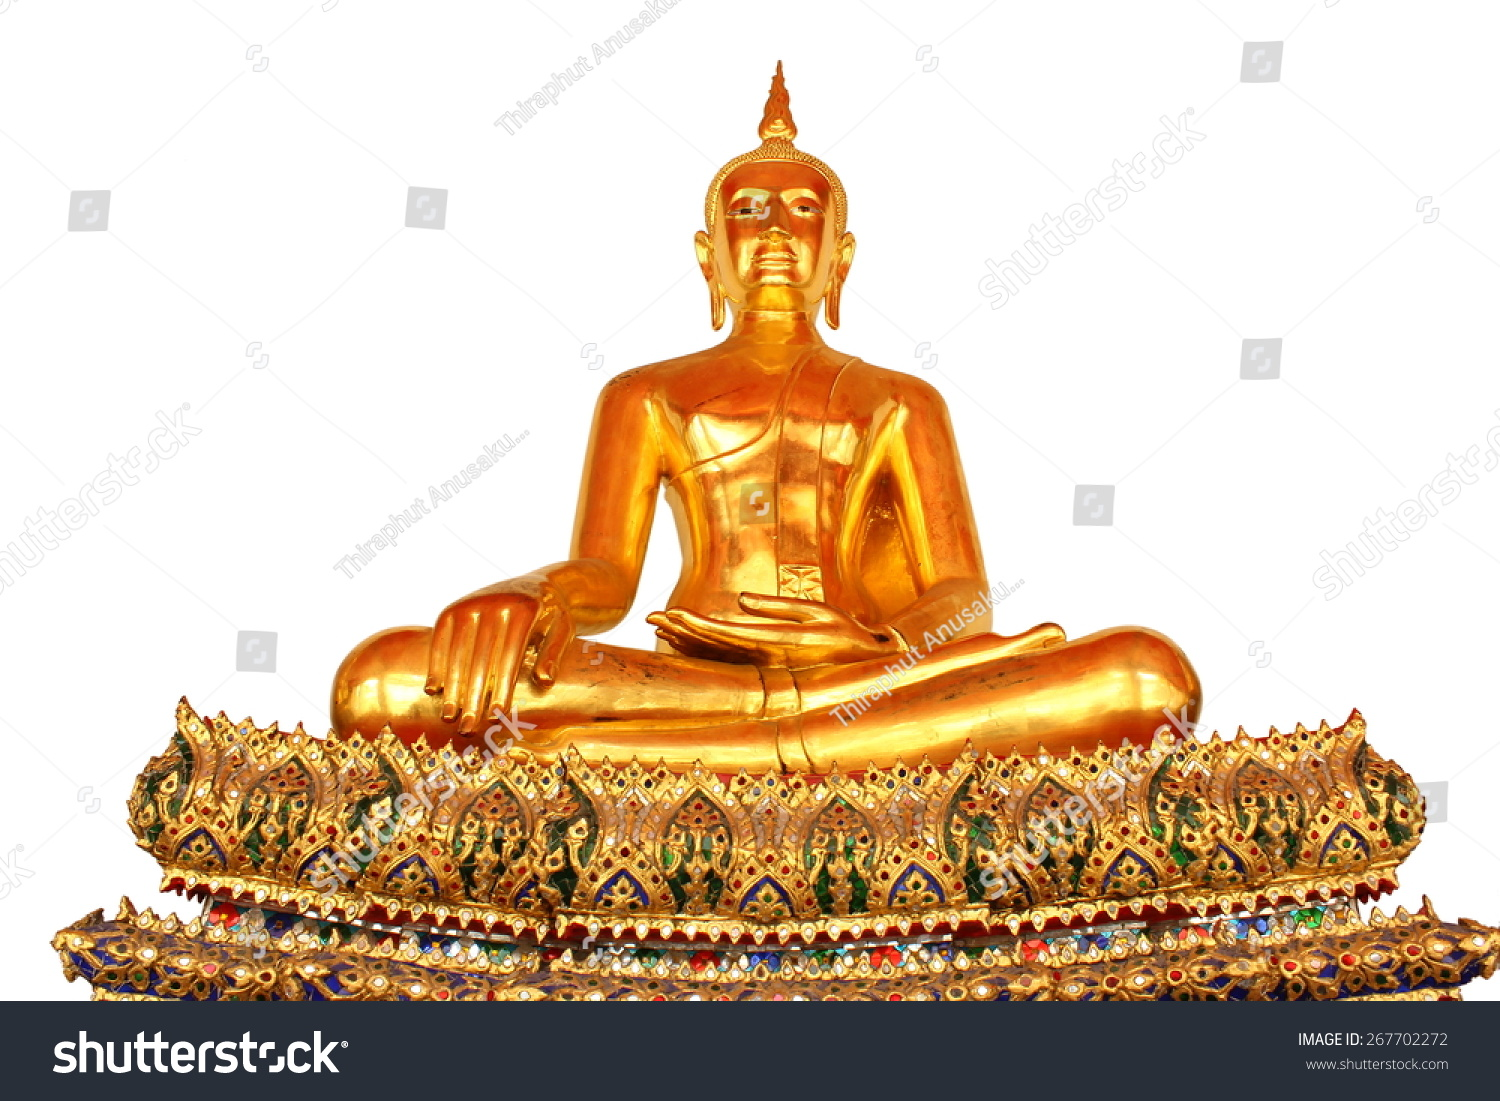 moundville buddhist singles Discover buddhist friends date, the completely free site for single buddhists and  those looking to  never pay anything, meet buddhists for dating and friendship.